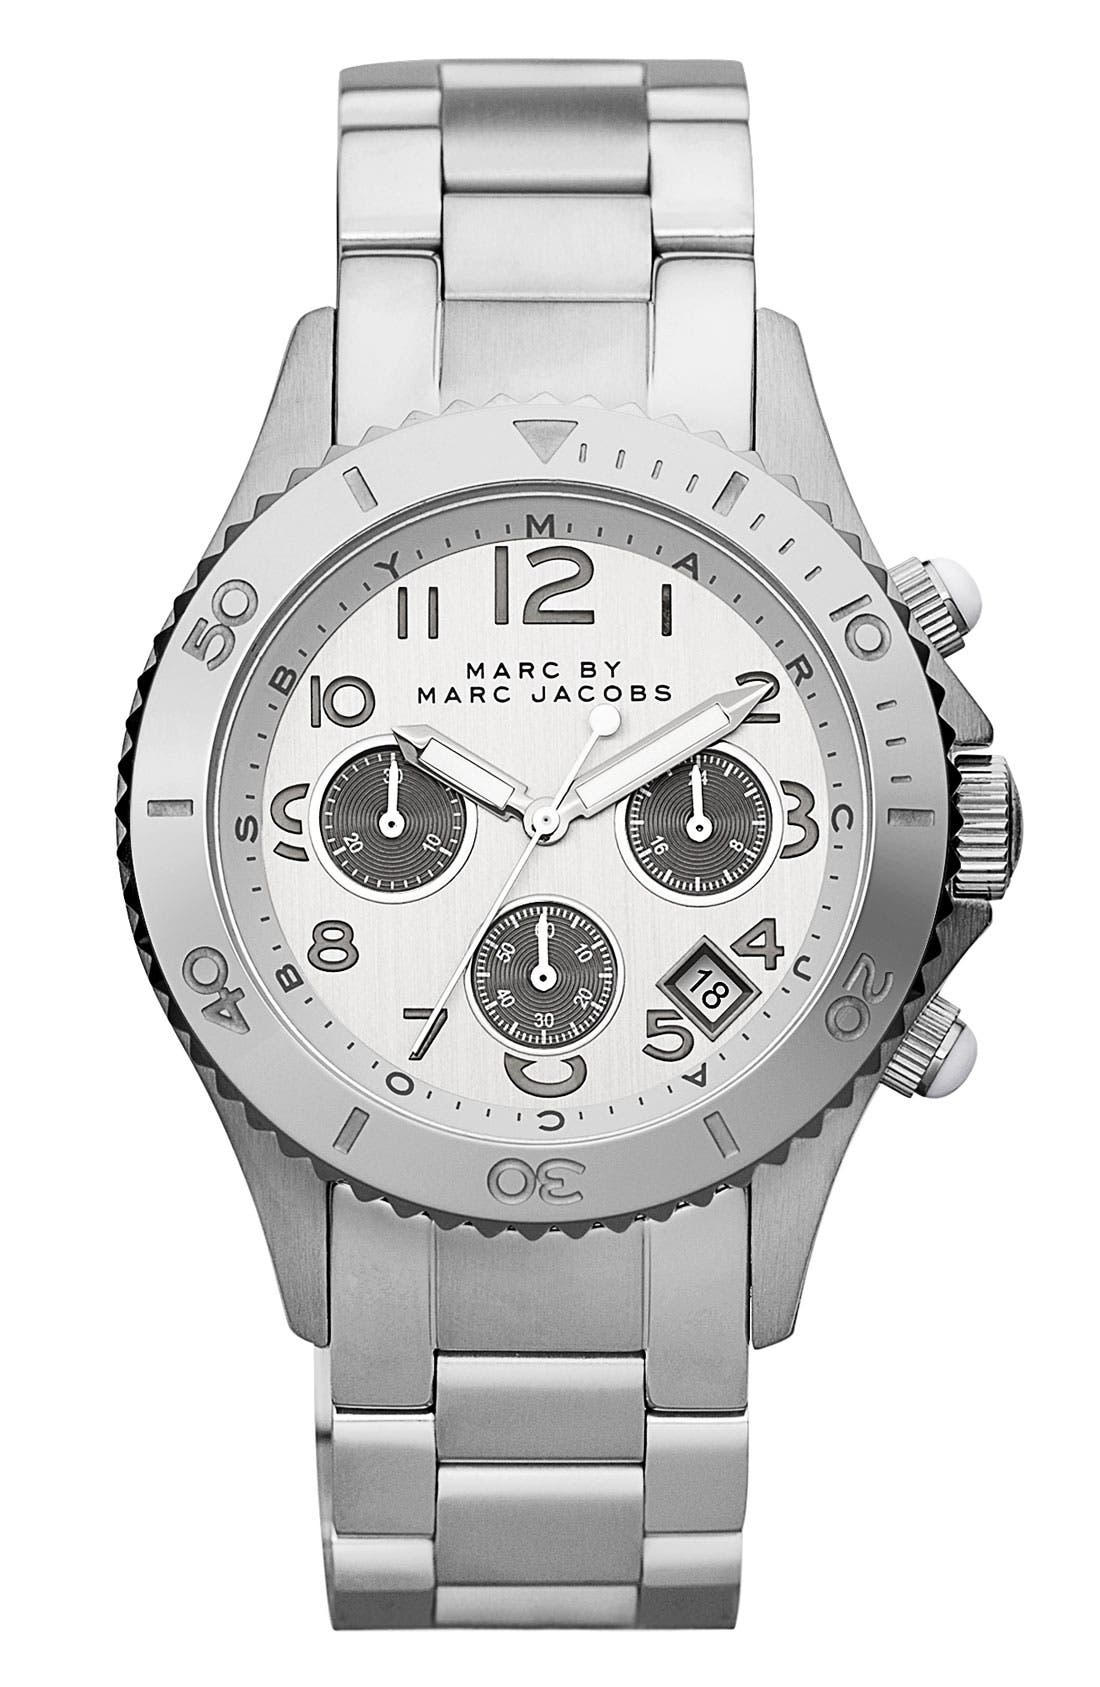 Main Image - MARC JACOBS 'Rock' Chronograph Bracelet Watch